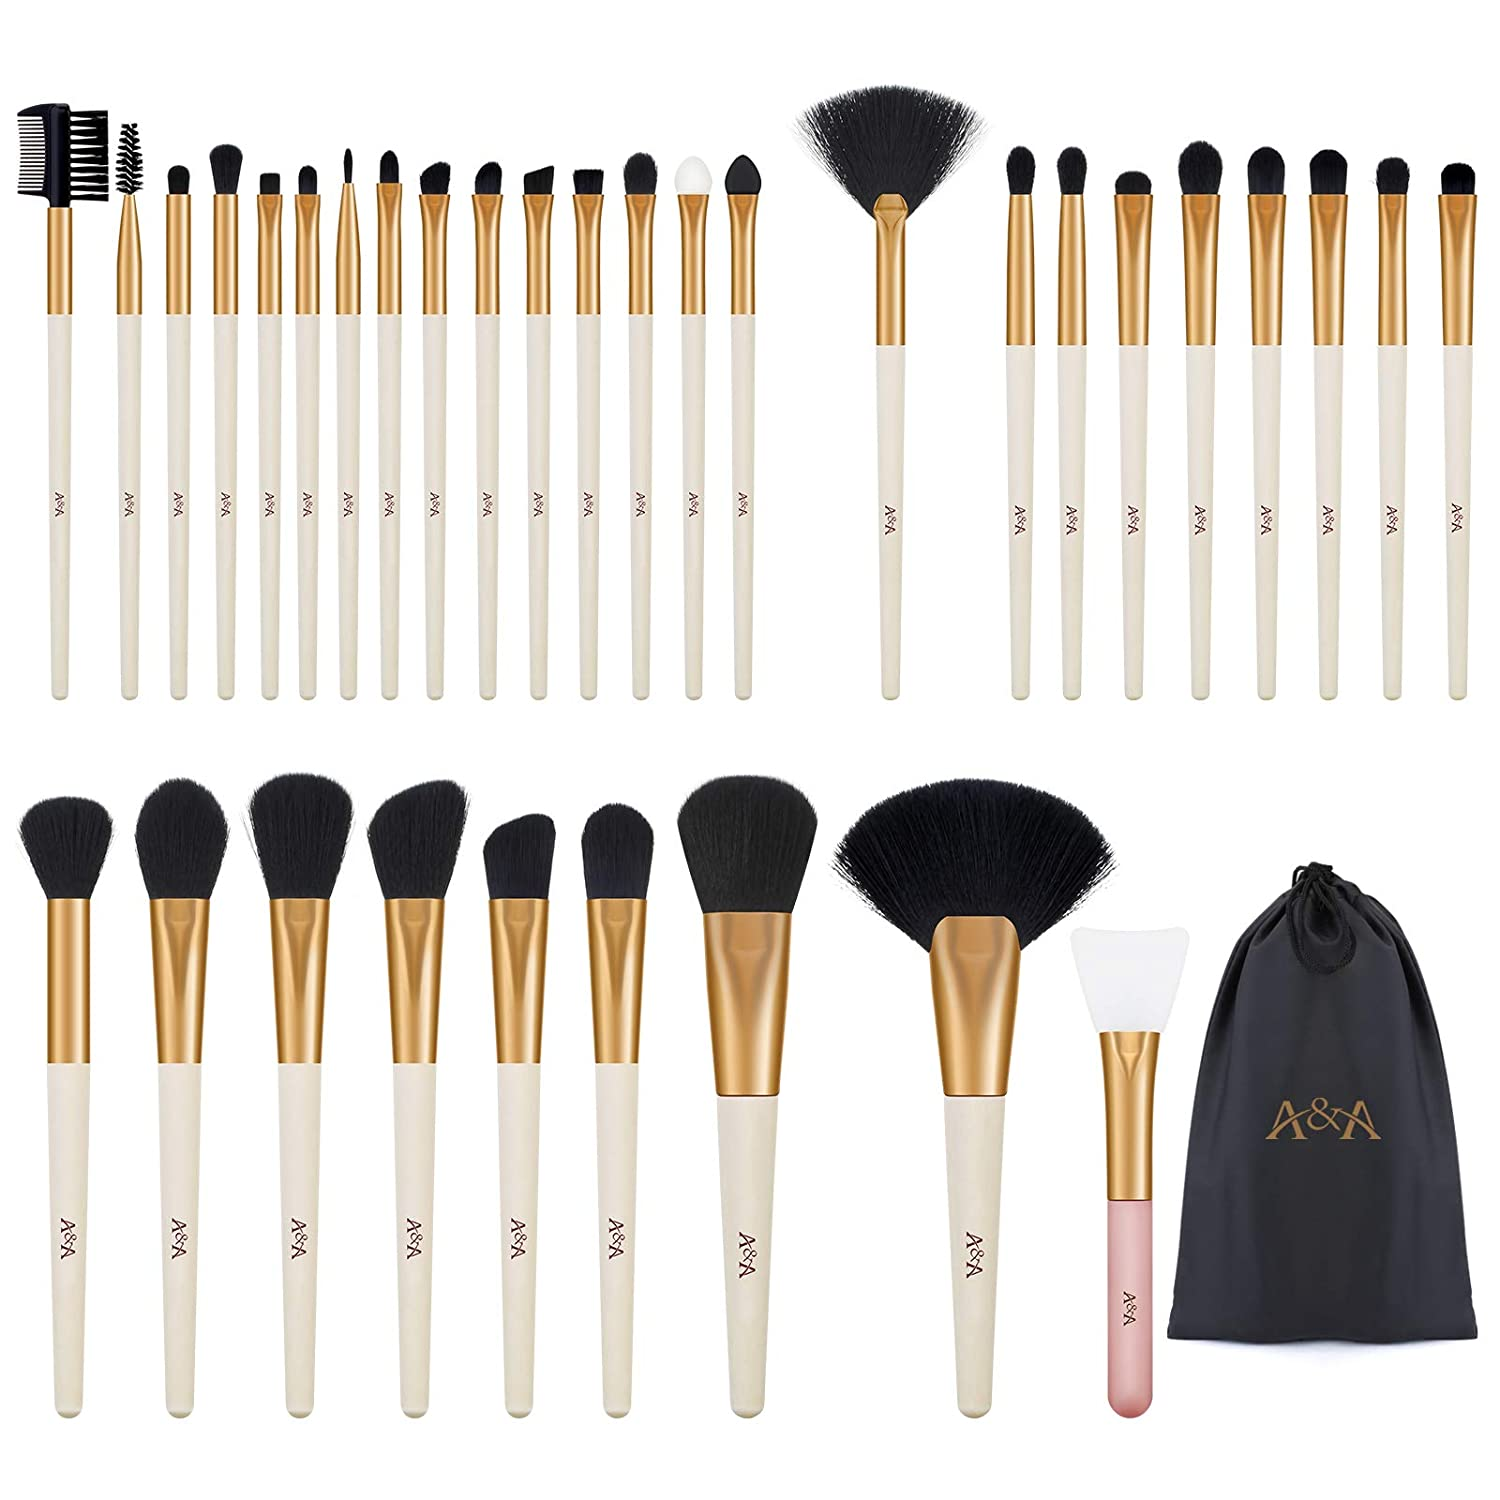 Makeup Brushes Set - Professional Cosmetic Tools 33 Pcs is Made of Premium Synthetic Fiber and Solid Wood Handle Incarnadine Rose Gold